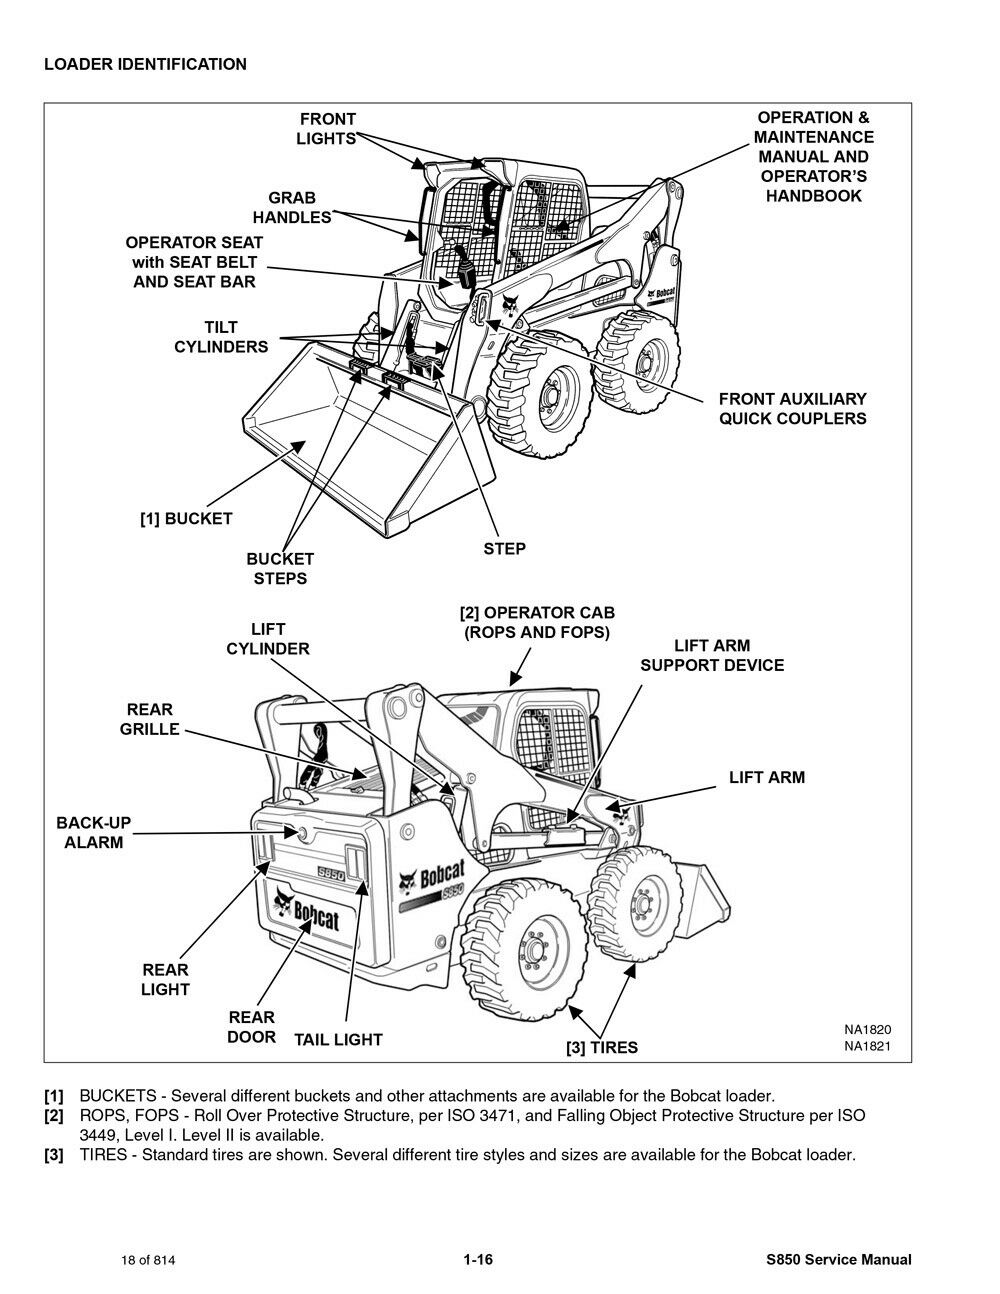 S850 Bobcat Wiring Diagram Will Be A Thing 1996 Tvr Chimaera Main Front Engine Fuse Box Amotmx Service Repair Manual 810 Pg 6987479 Ebay Rh Com